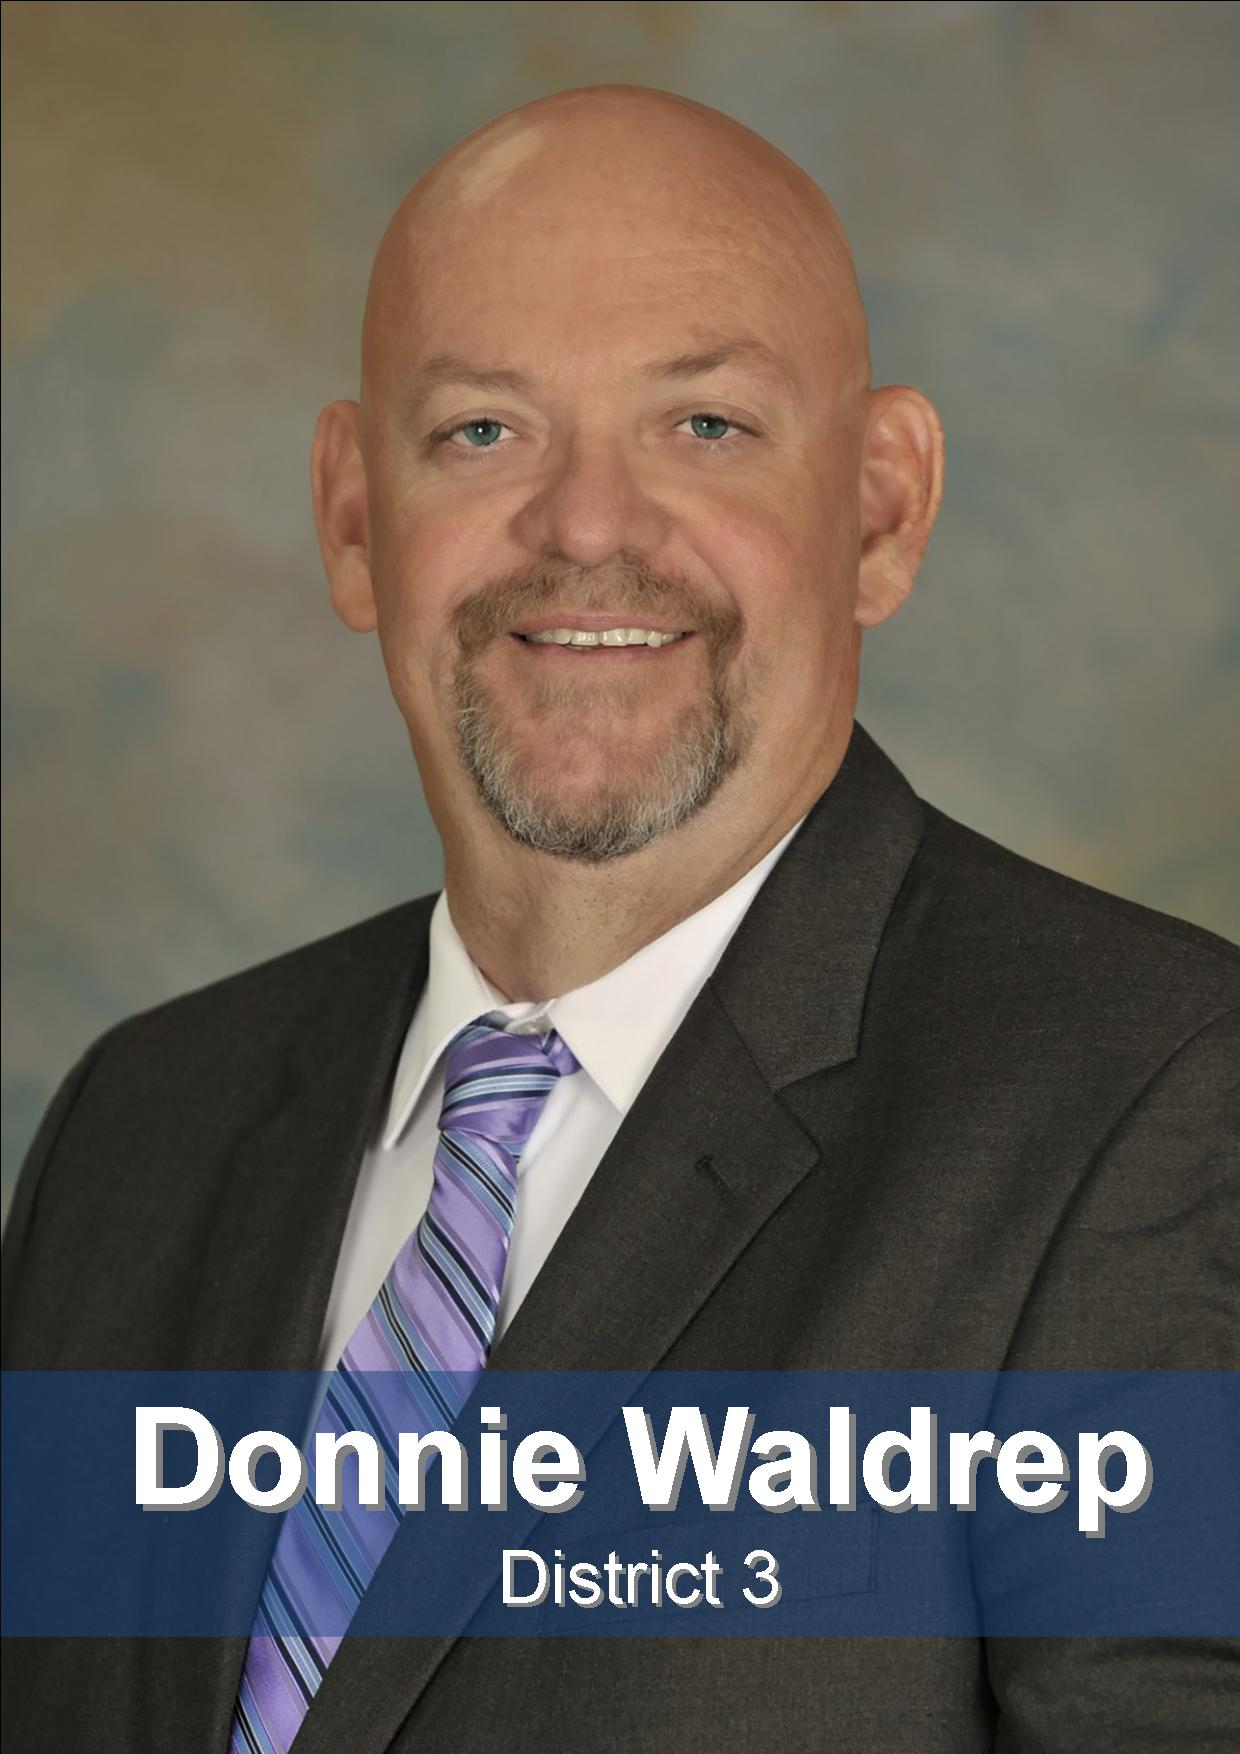 Donnie Waldrep - Board Member - District 3